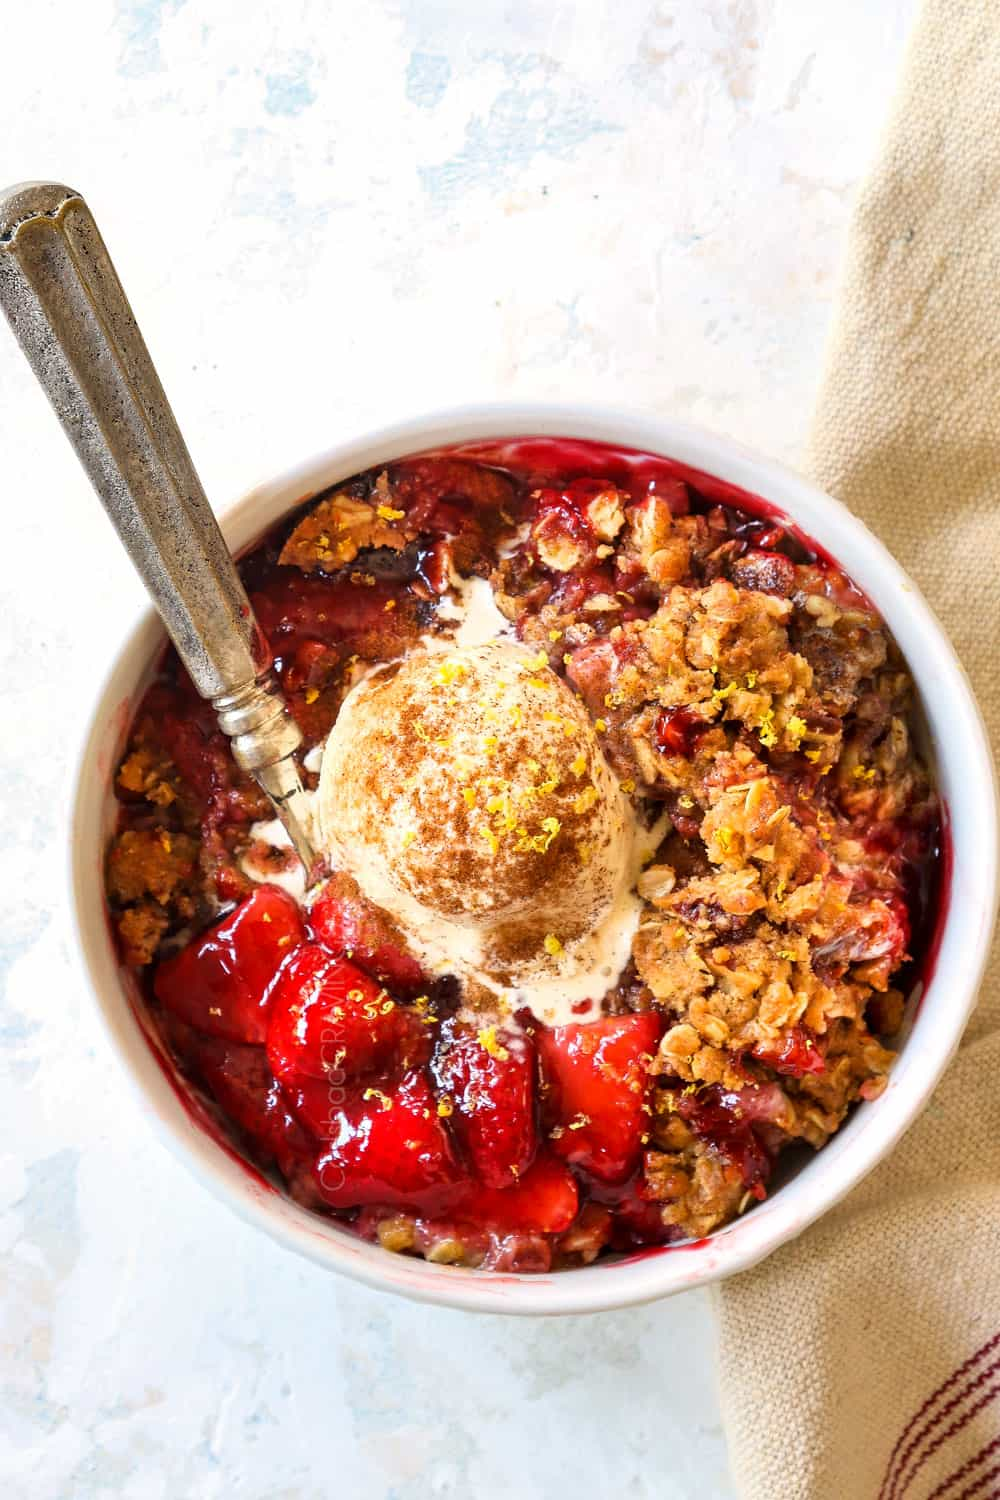 top view of strawberry crisp recipe in a white bowl with oats